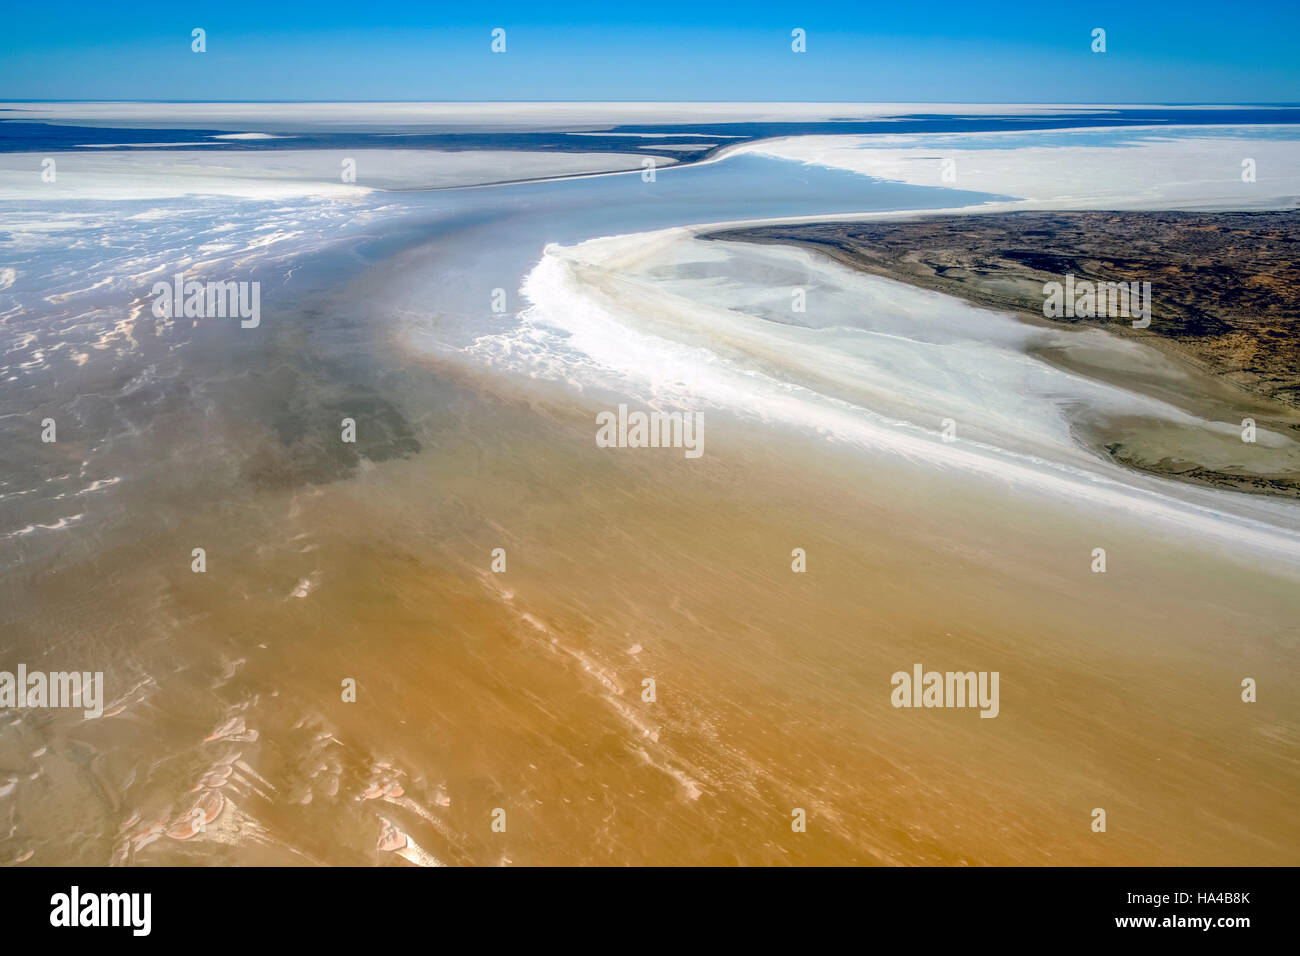 An aerial view of the rare flooding of Kati Thanda - Lake Eyre in the Australian Outback - Stock Image